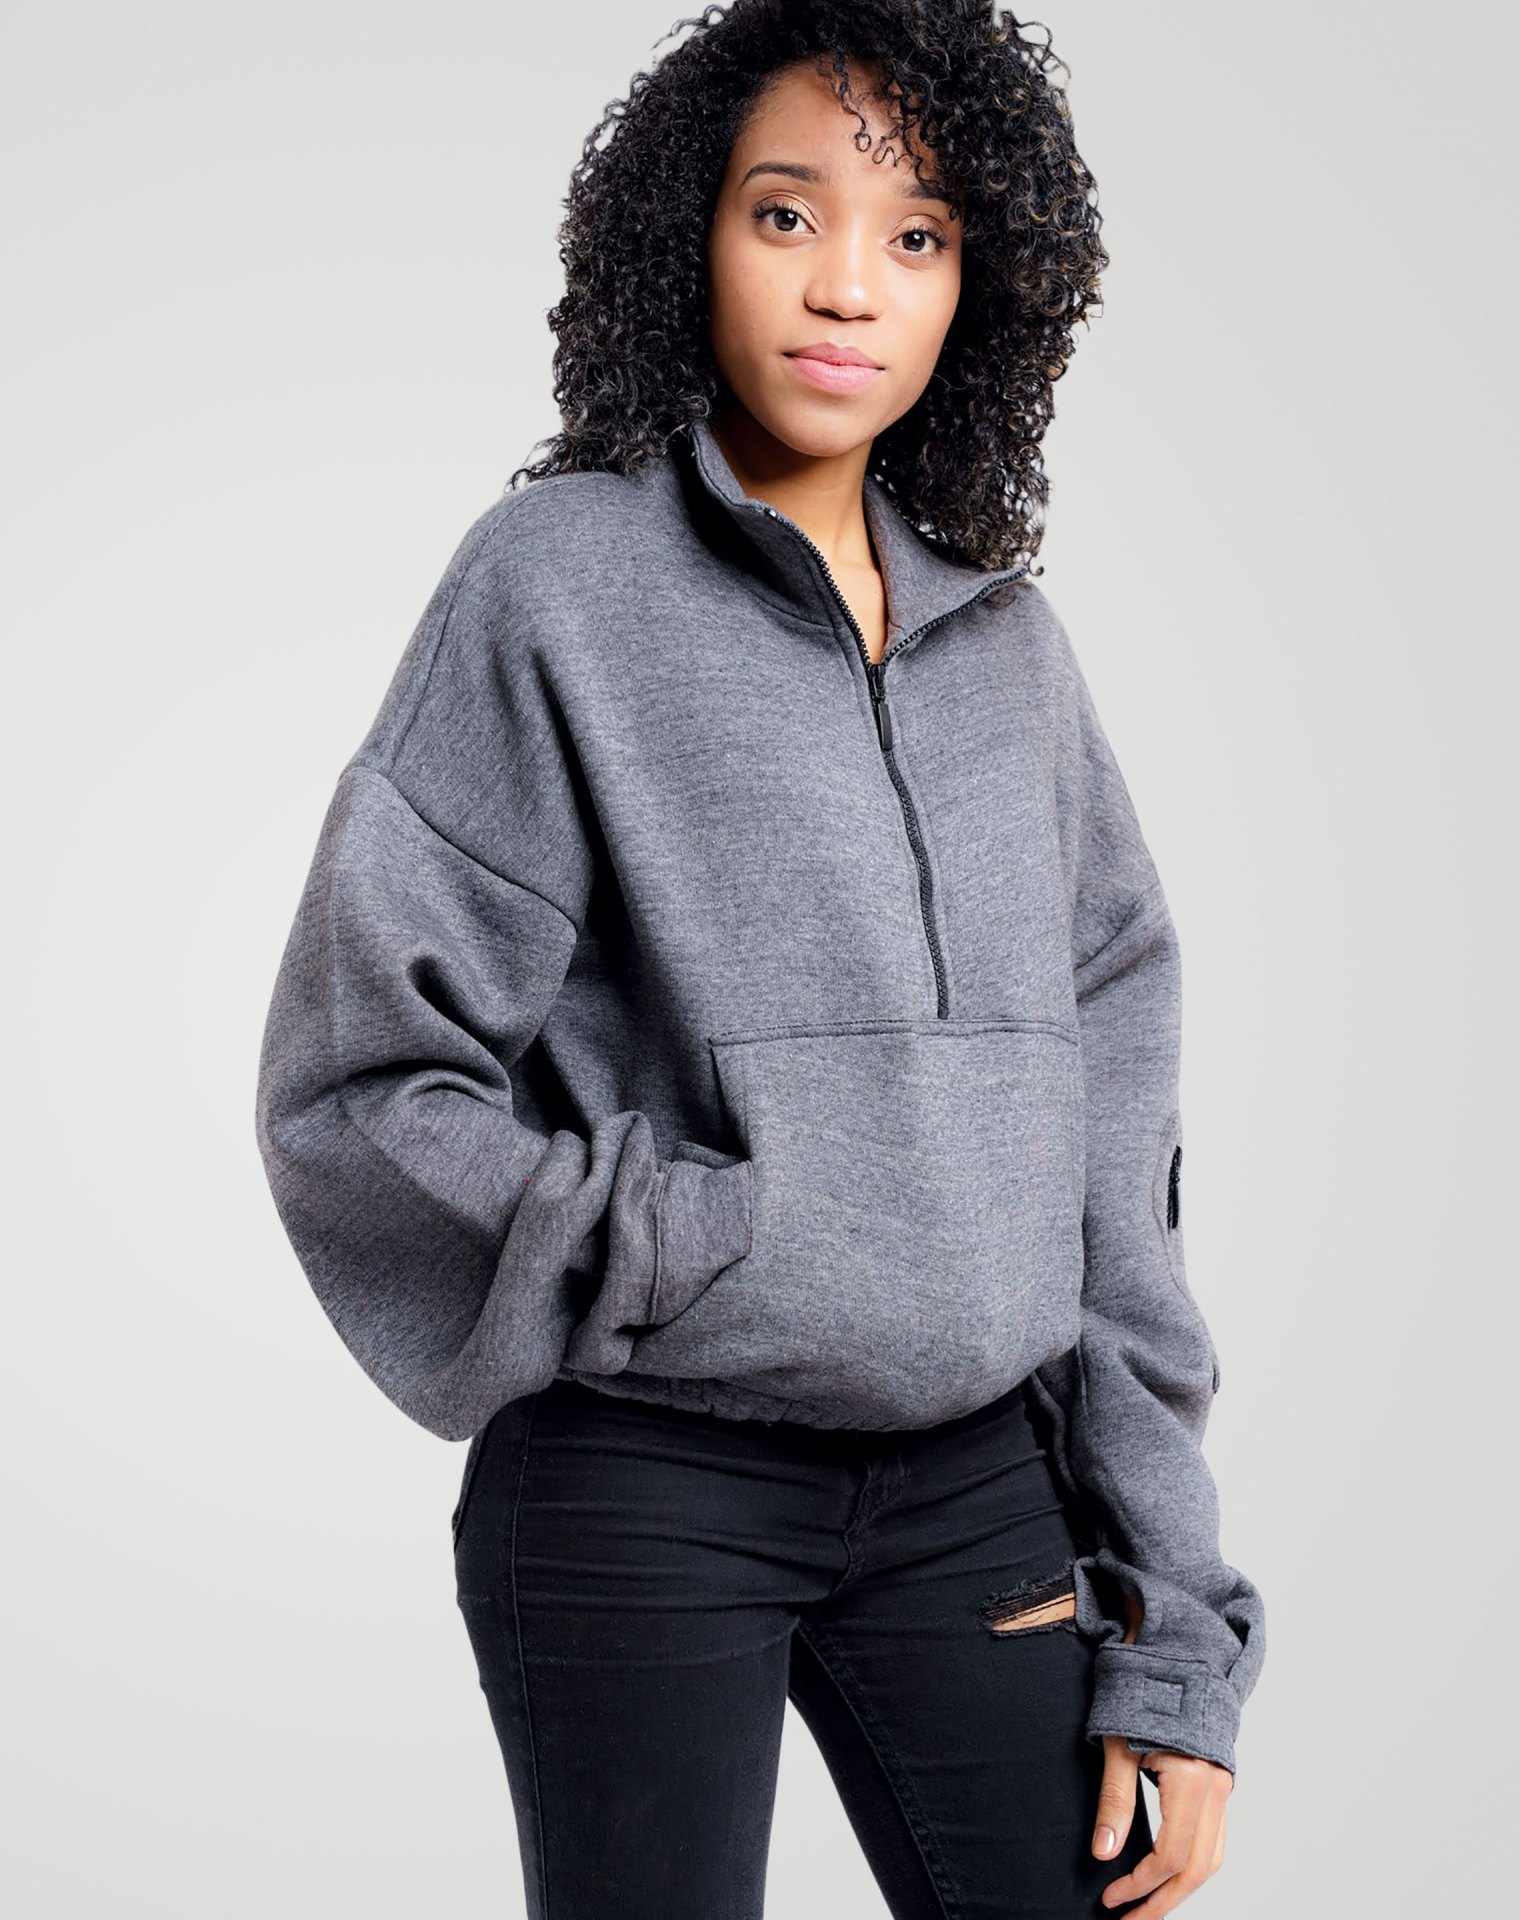 Image 4 of Womens High Neck Crop Top Zipper Pullover color Grey and sizes 8,10,12 from Noroze